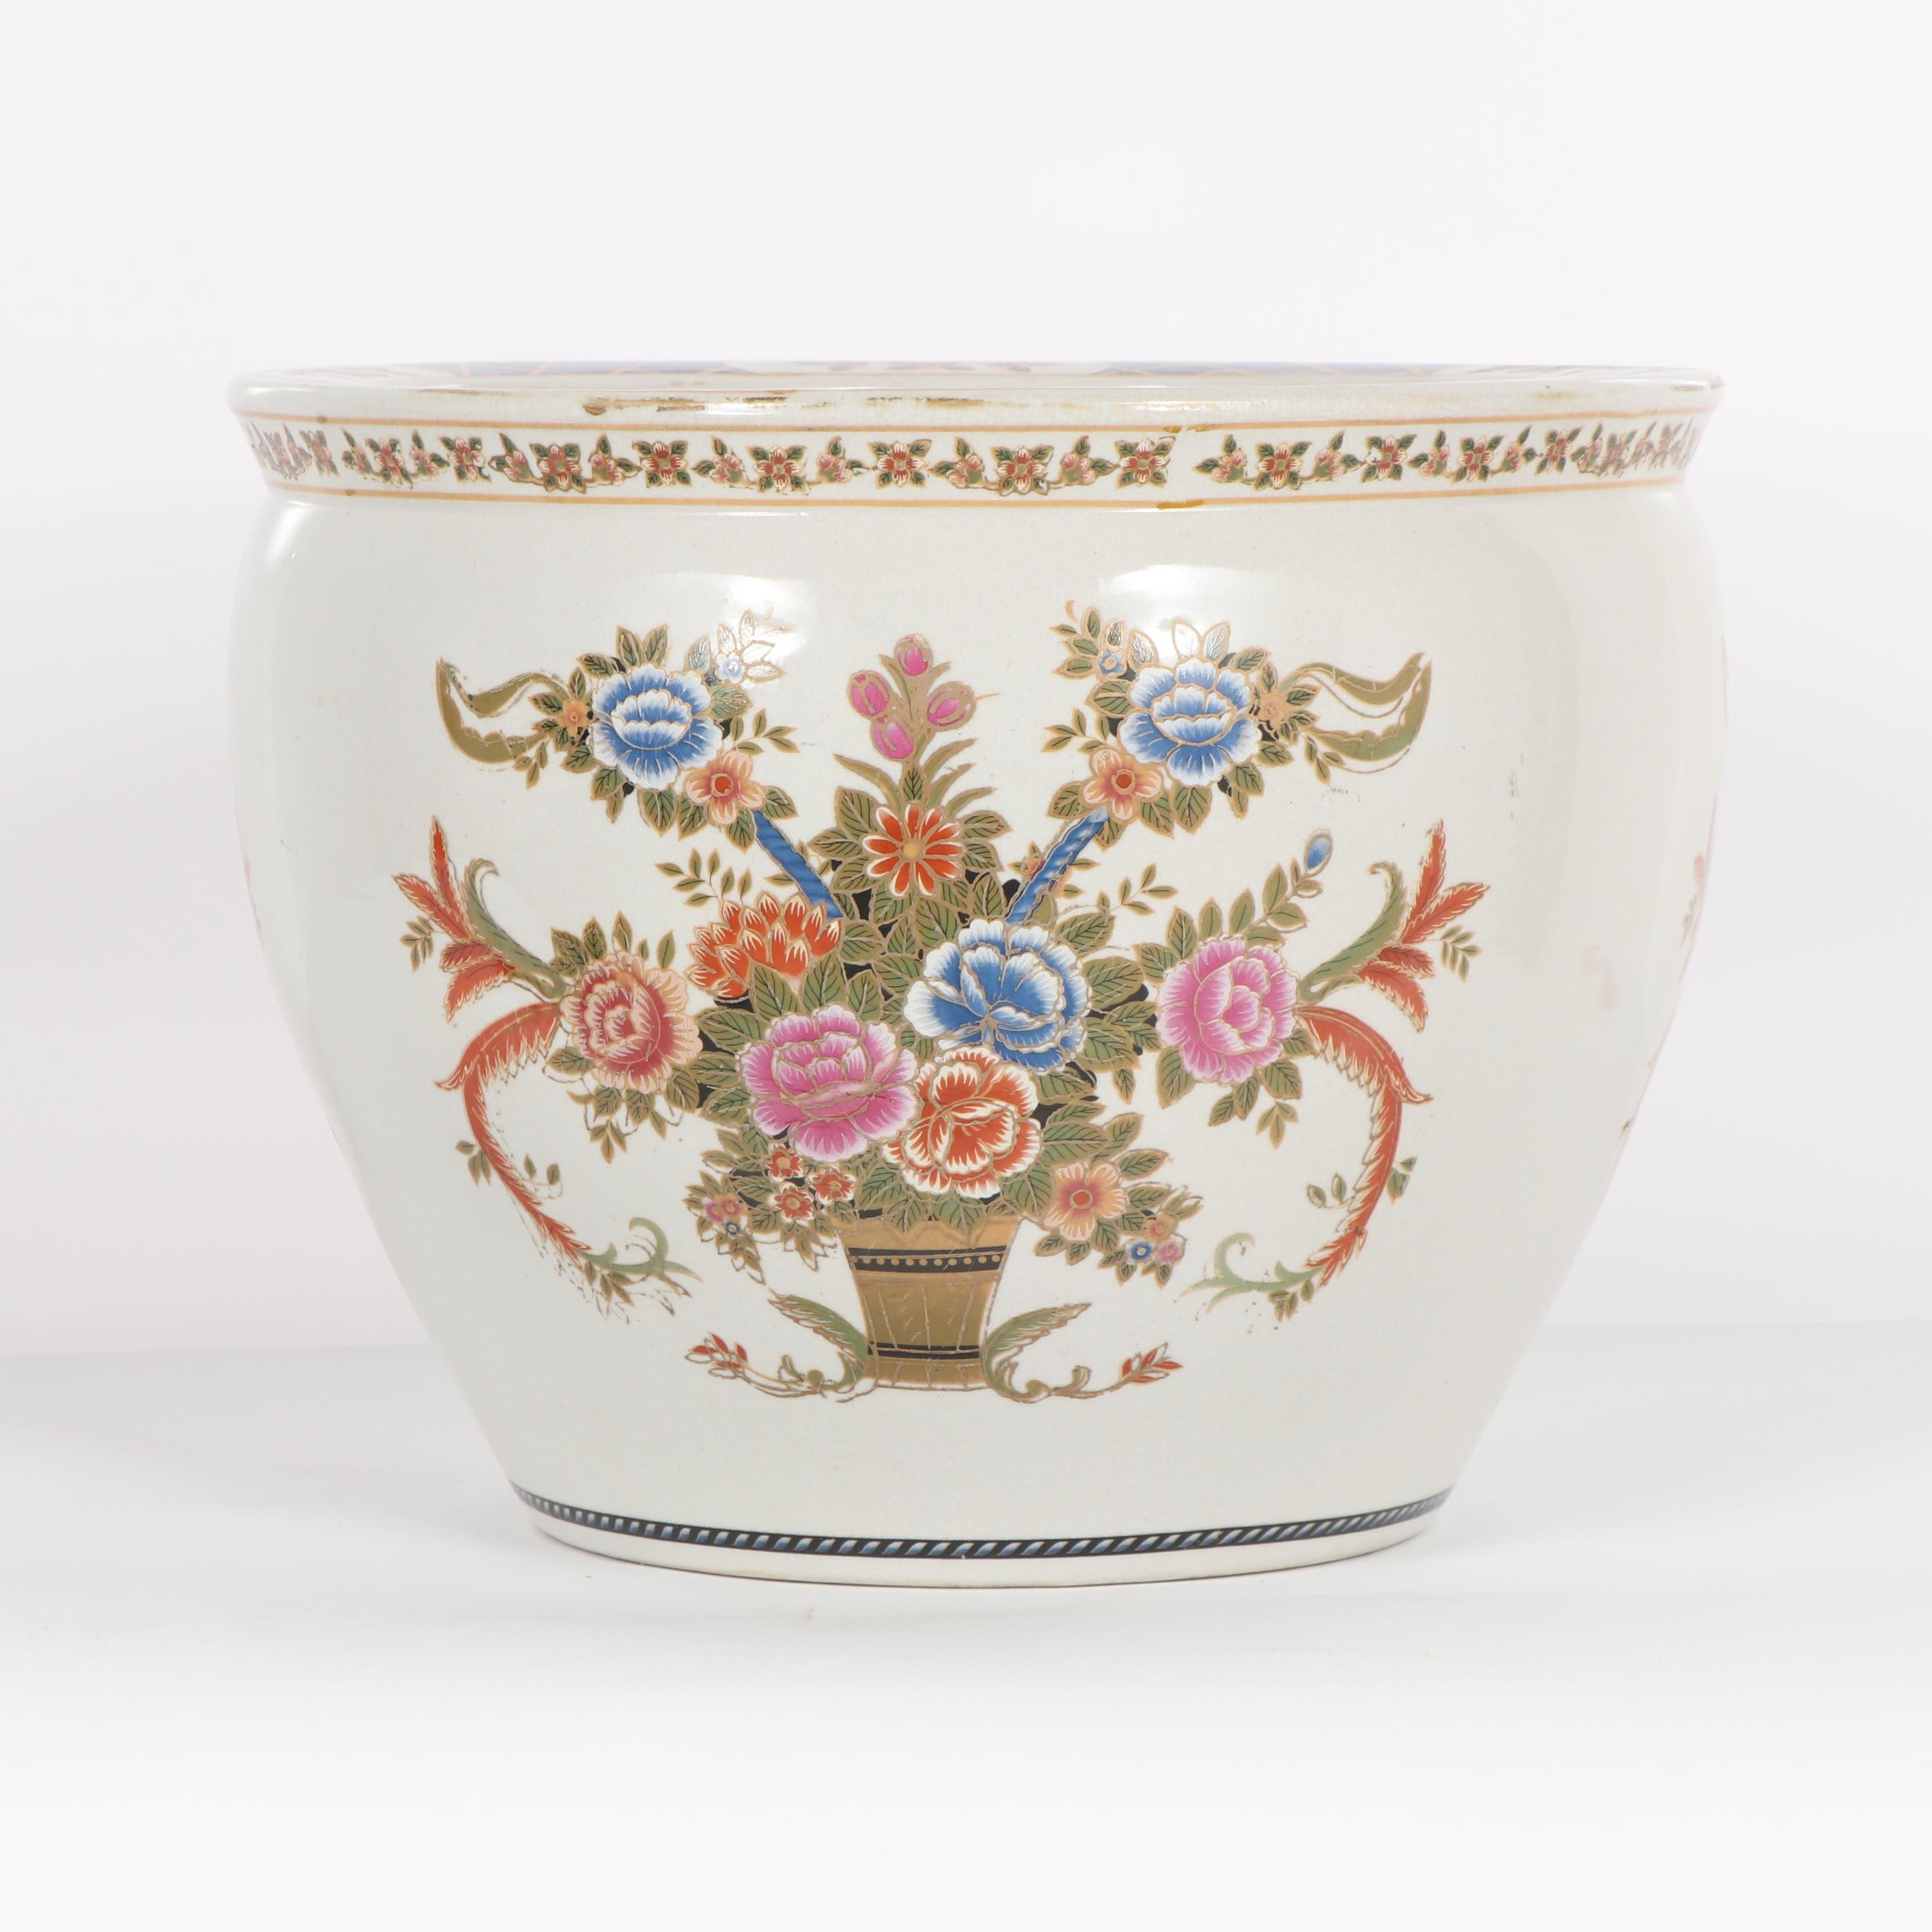 Chinese Floral Themed Fish Bowl Ceramic Planter